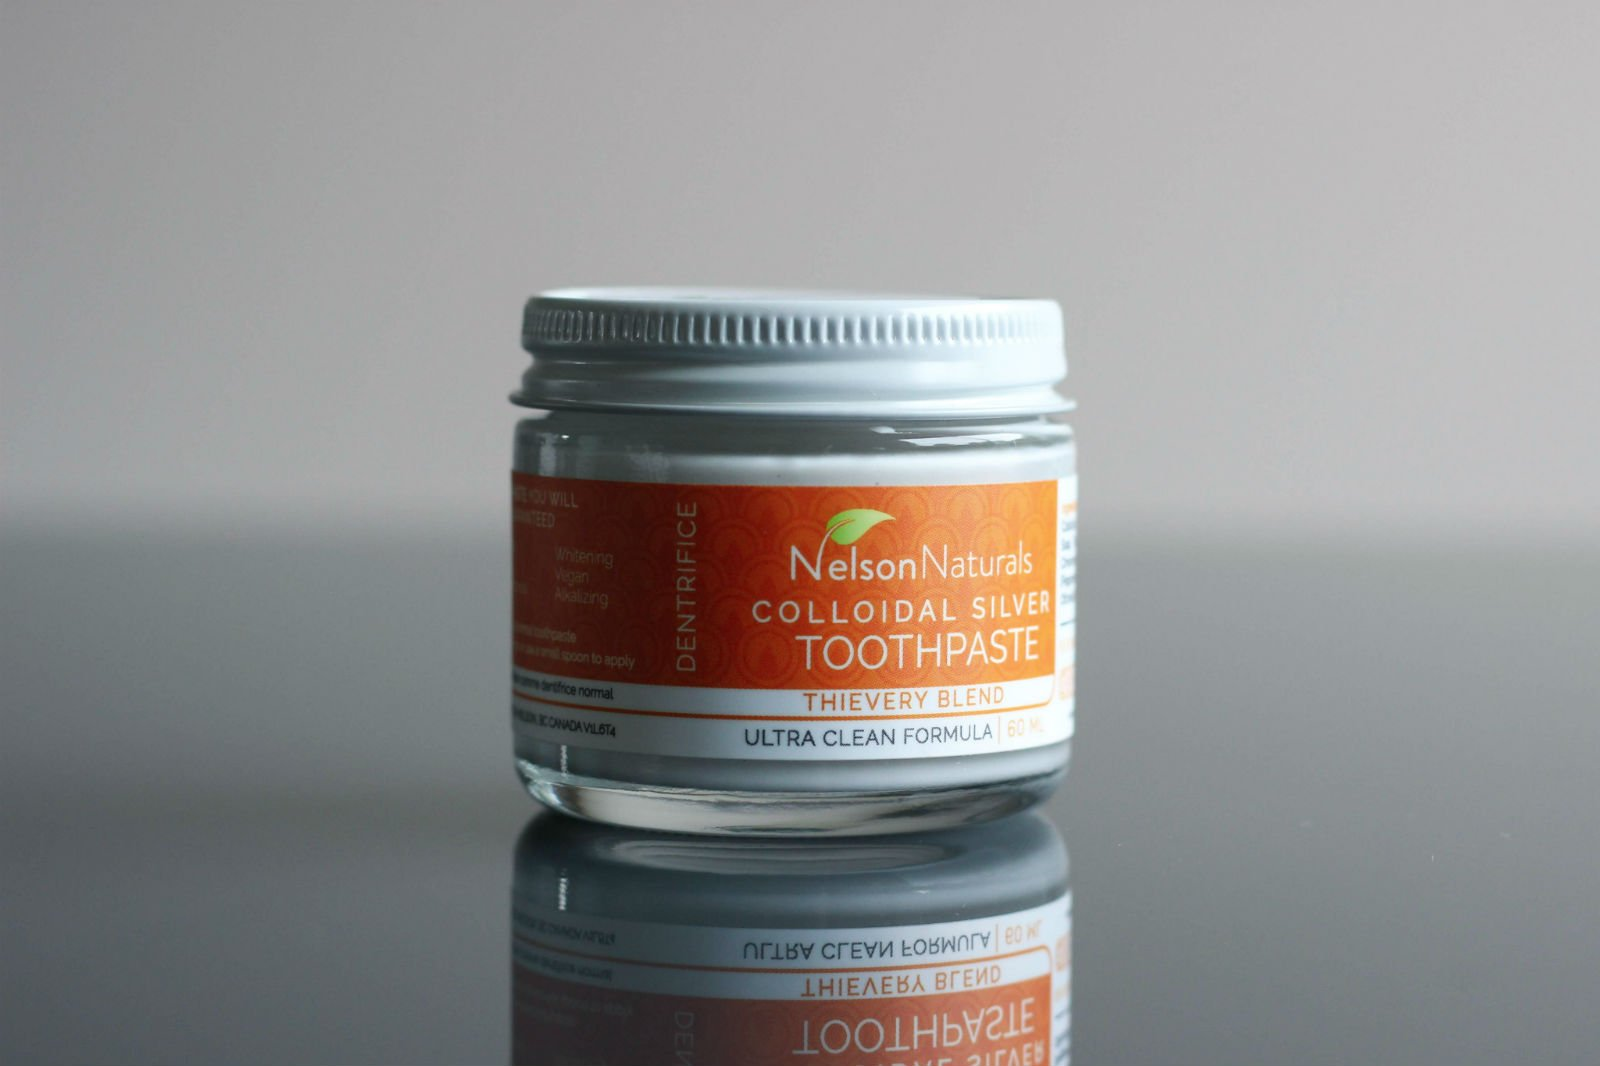 Nelson Naturals Zero Waste Toothpaste Review